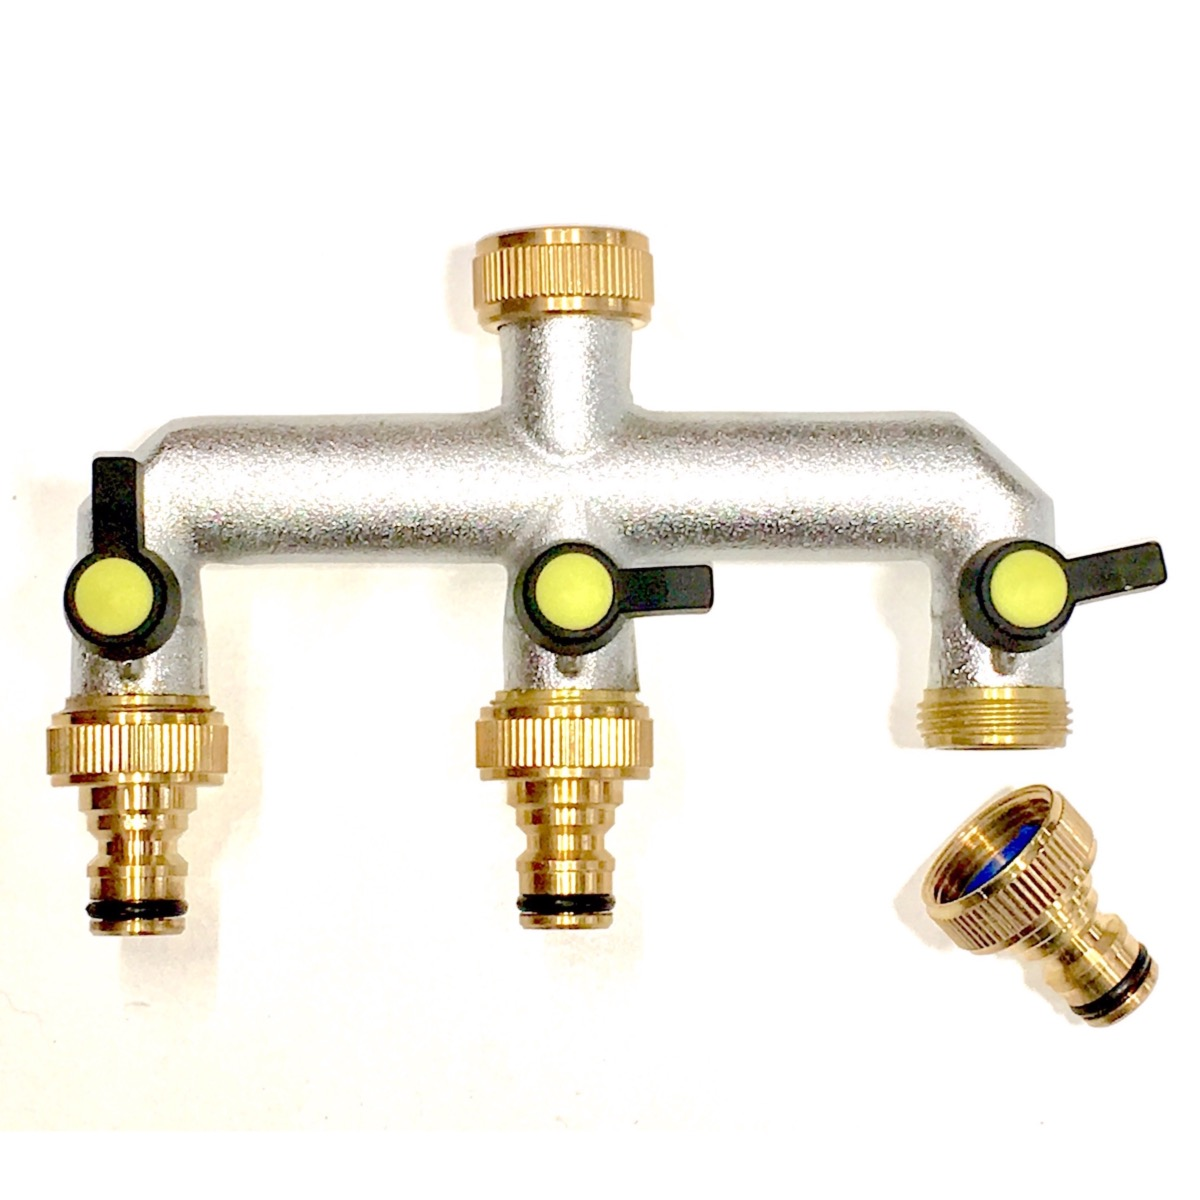 Three-way Brass Garden Tap connection